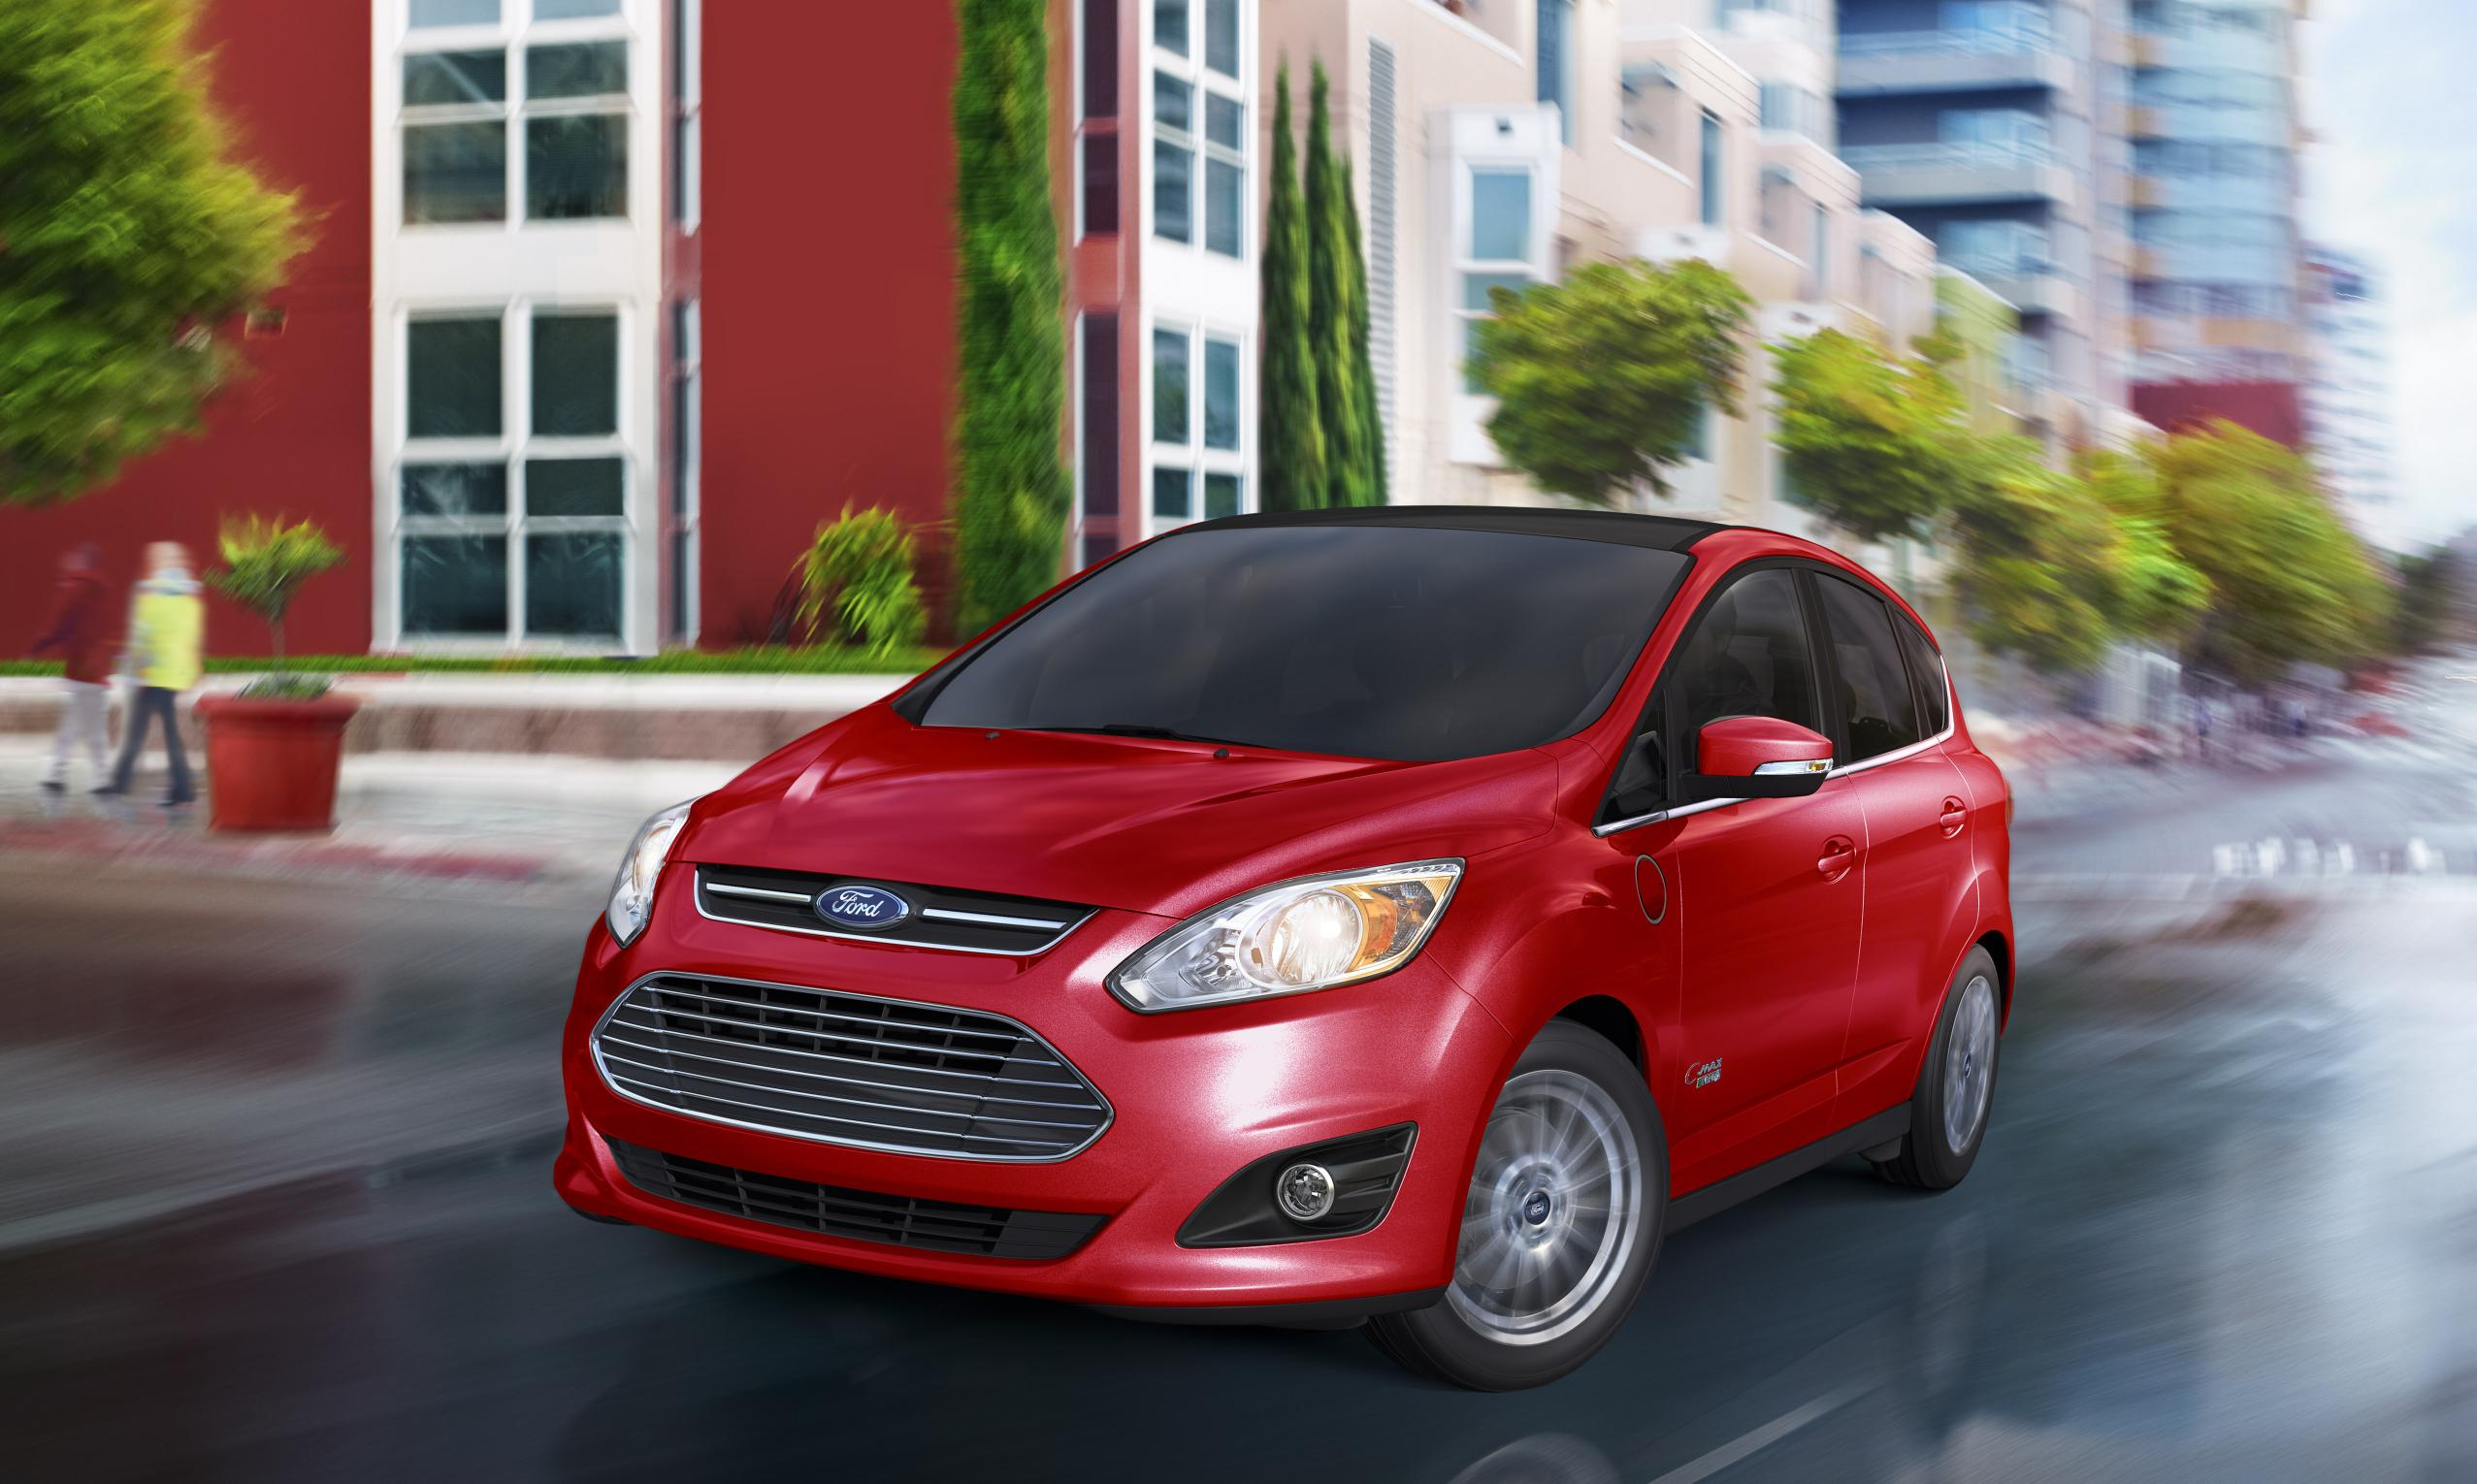 2017 Ford C-Max Energi For Sale In La Puente